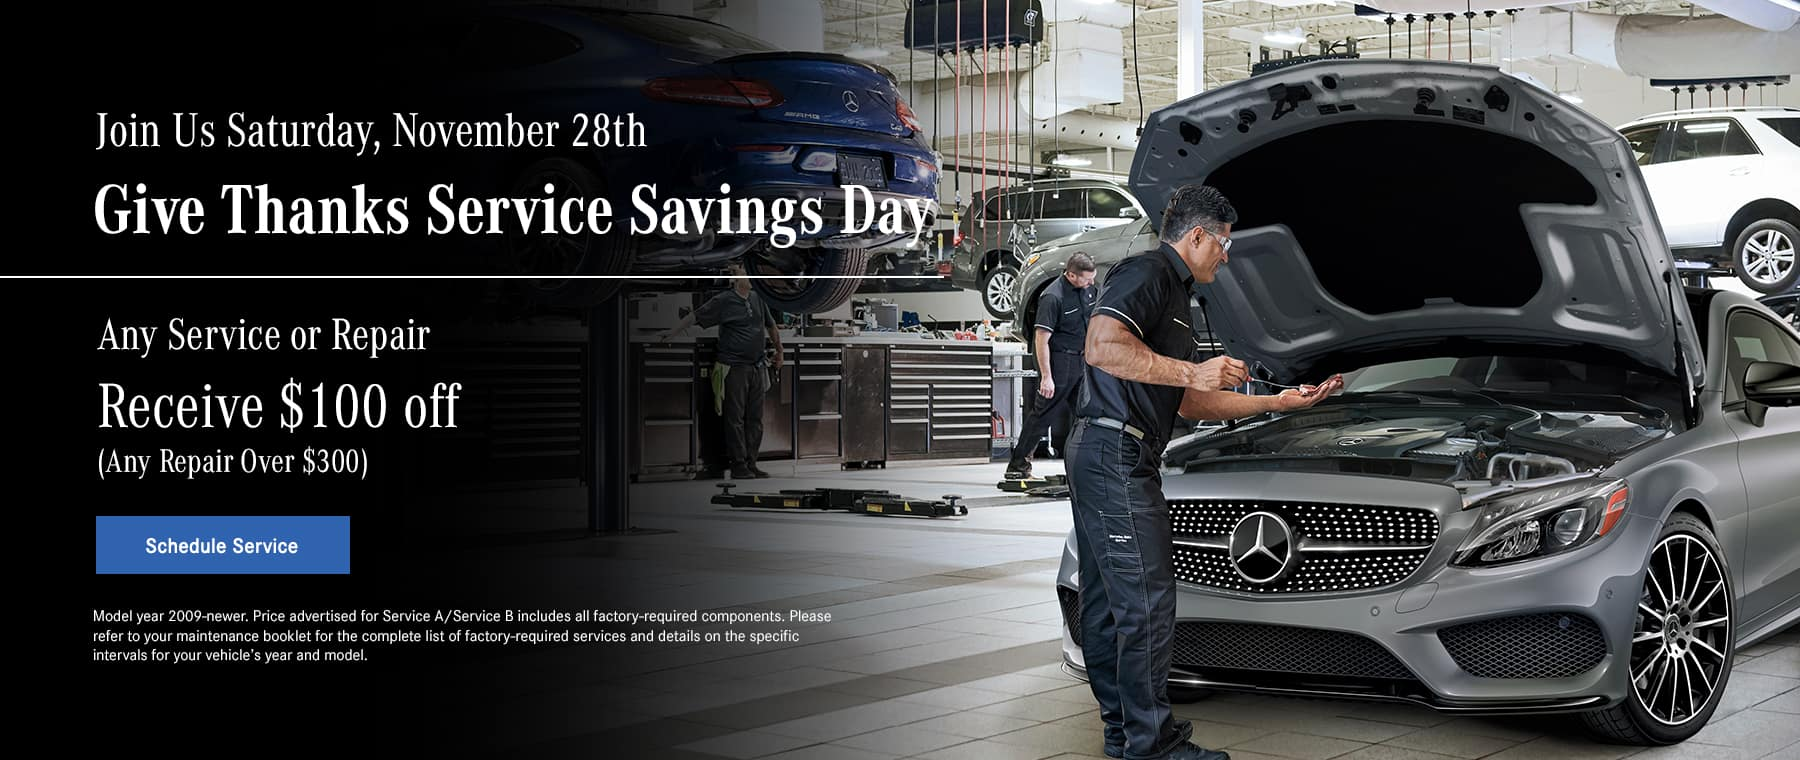 Give Thanks Service Savings Day